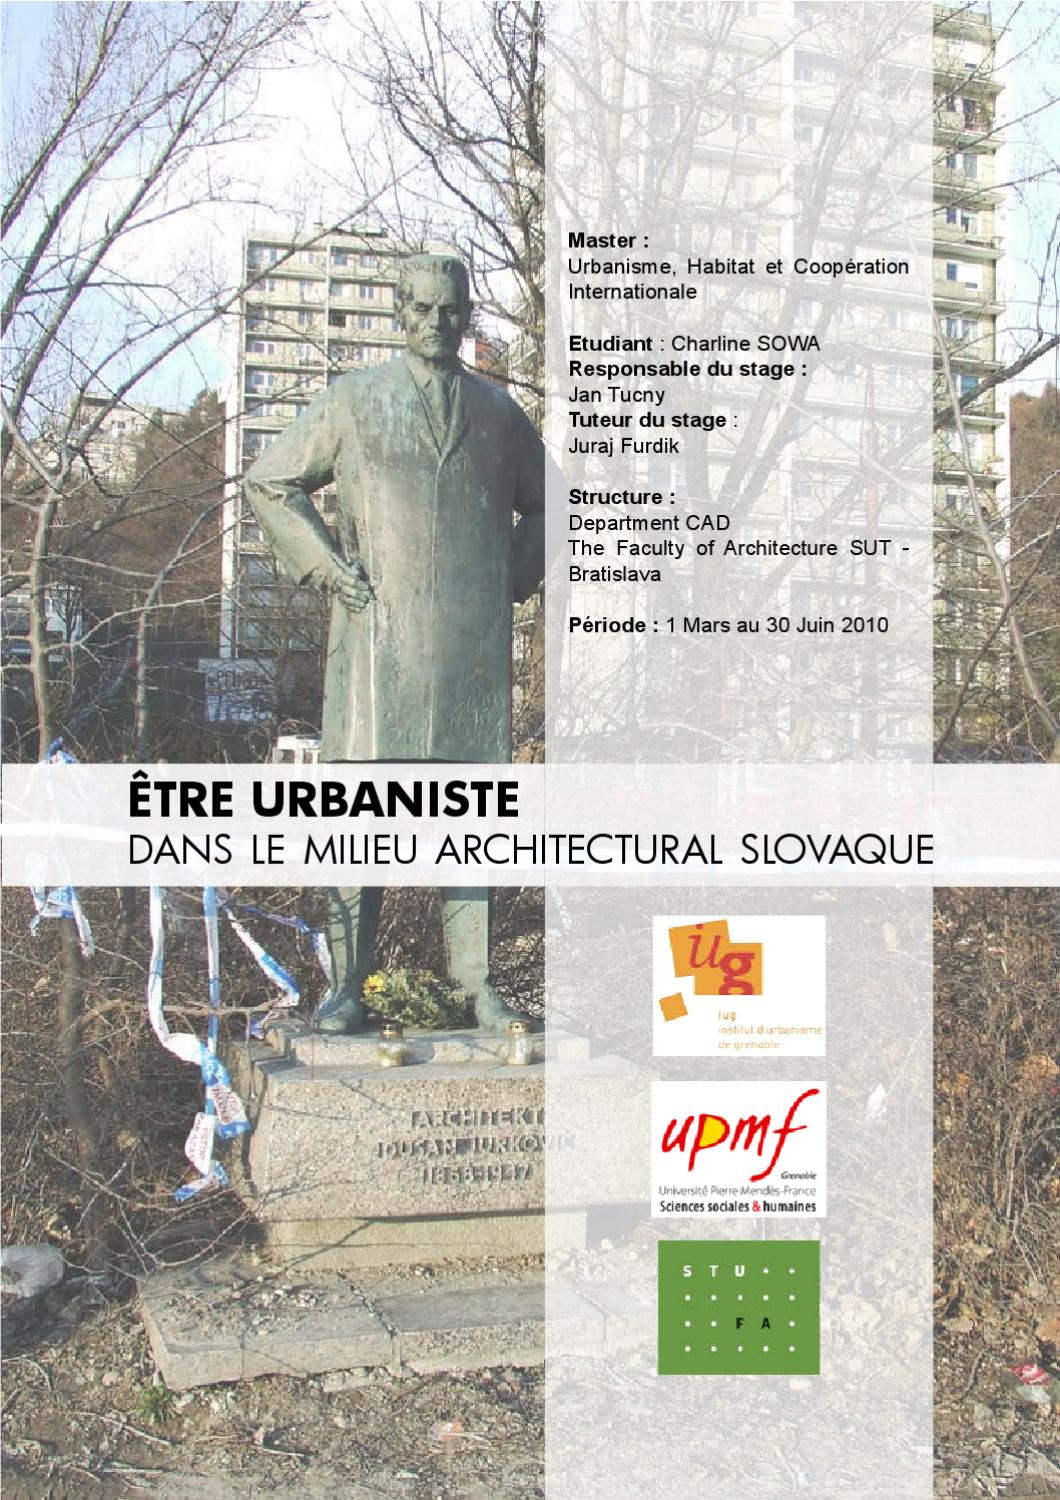 Rapport de stage tre urbaniste dans le milieu architectural slovaque by charline sowa issuu - Prenom charline ...